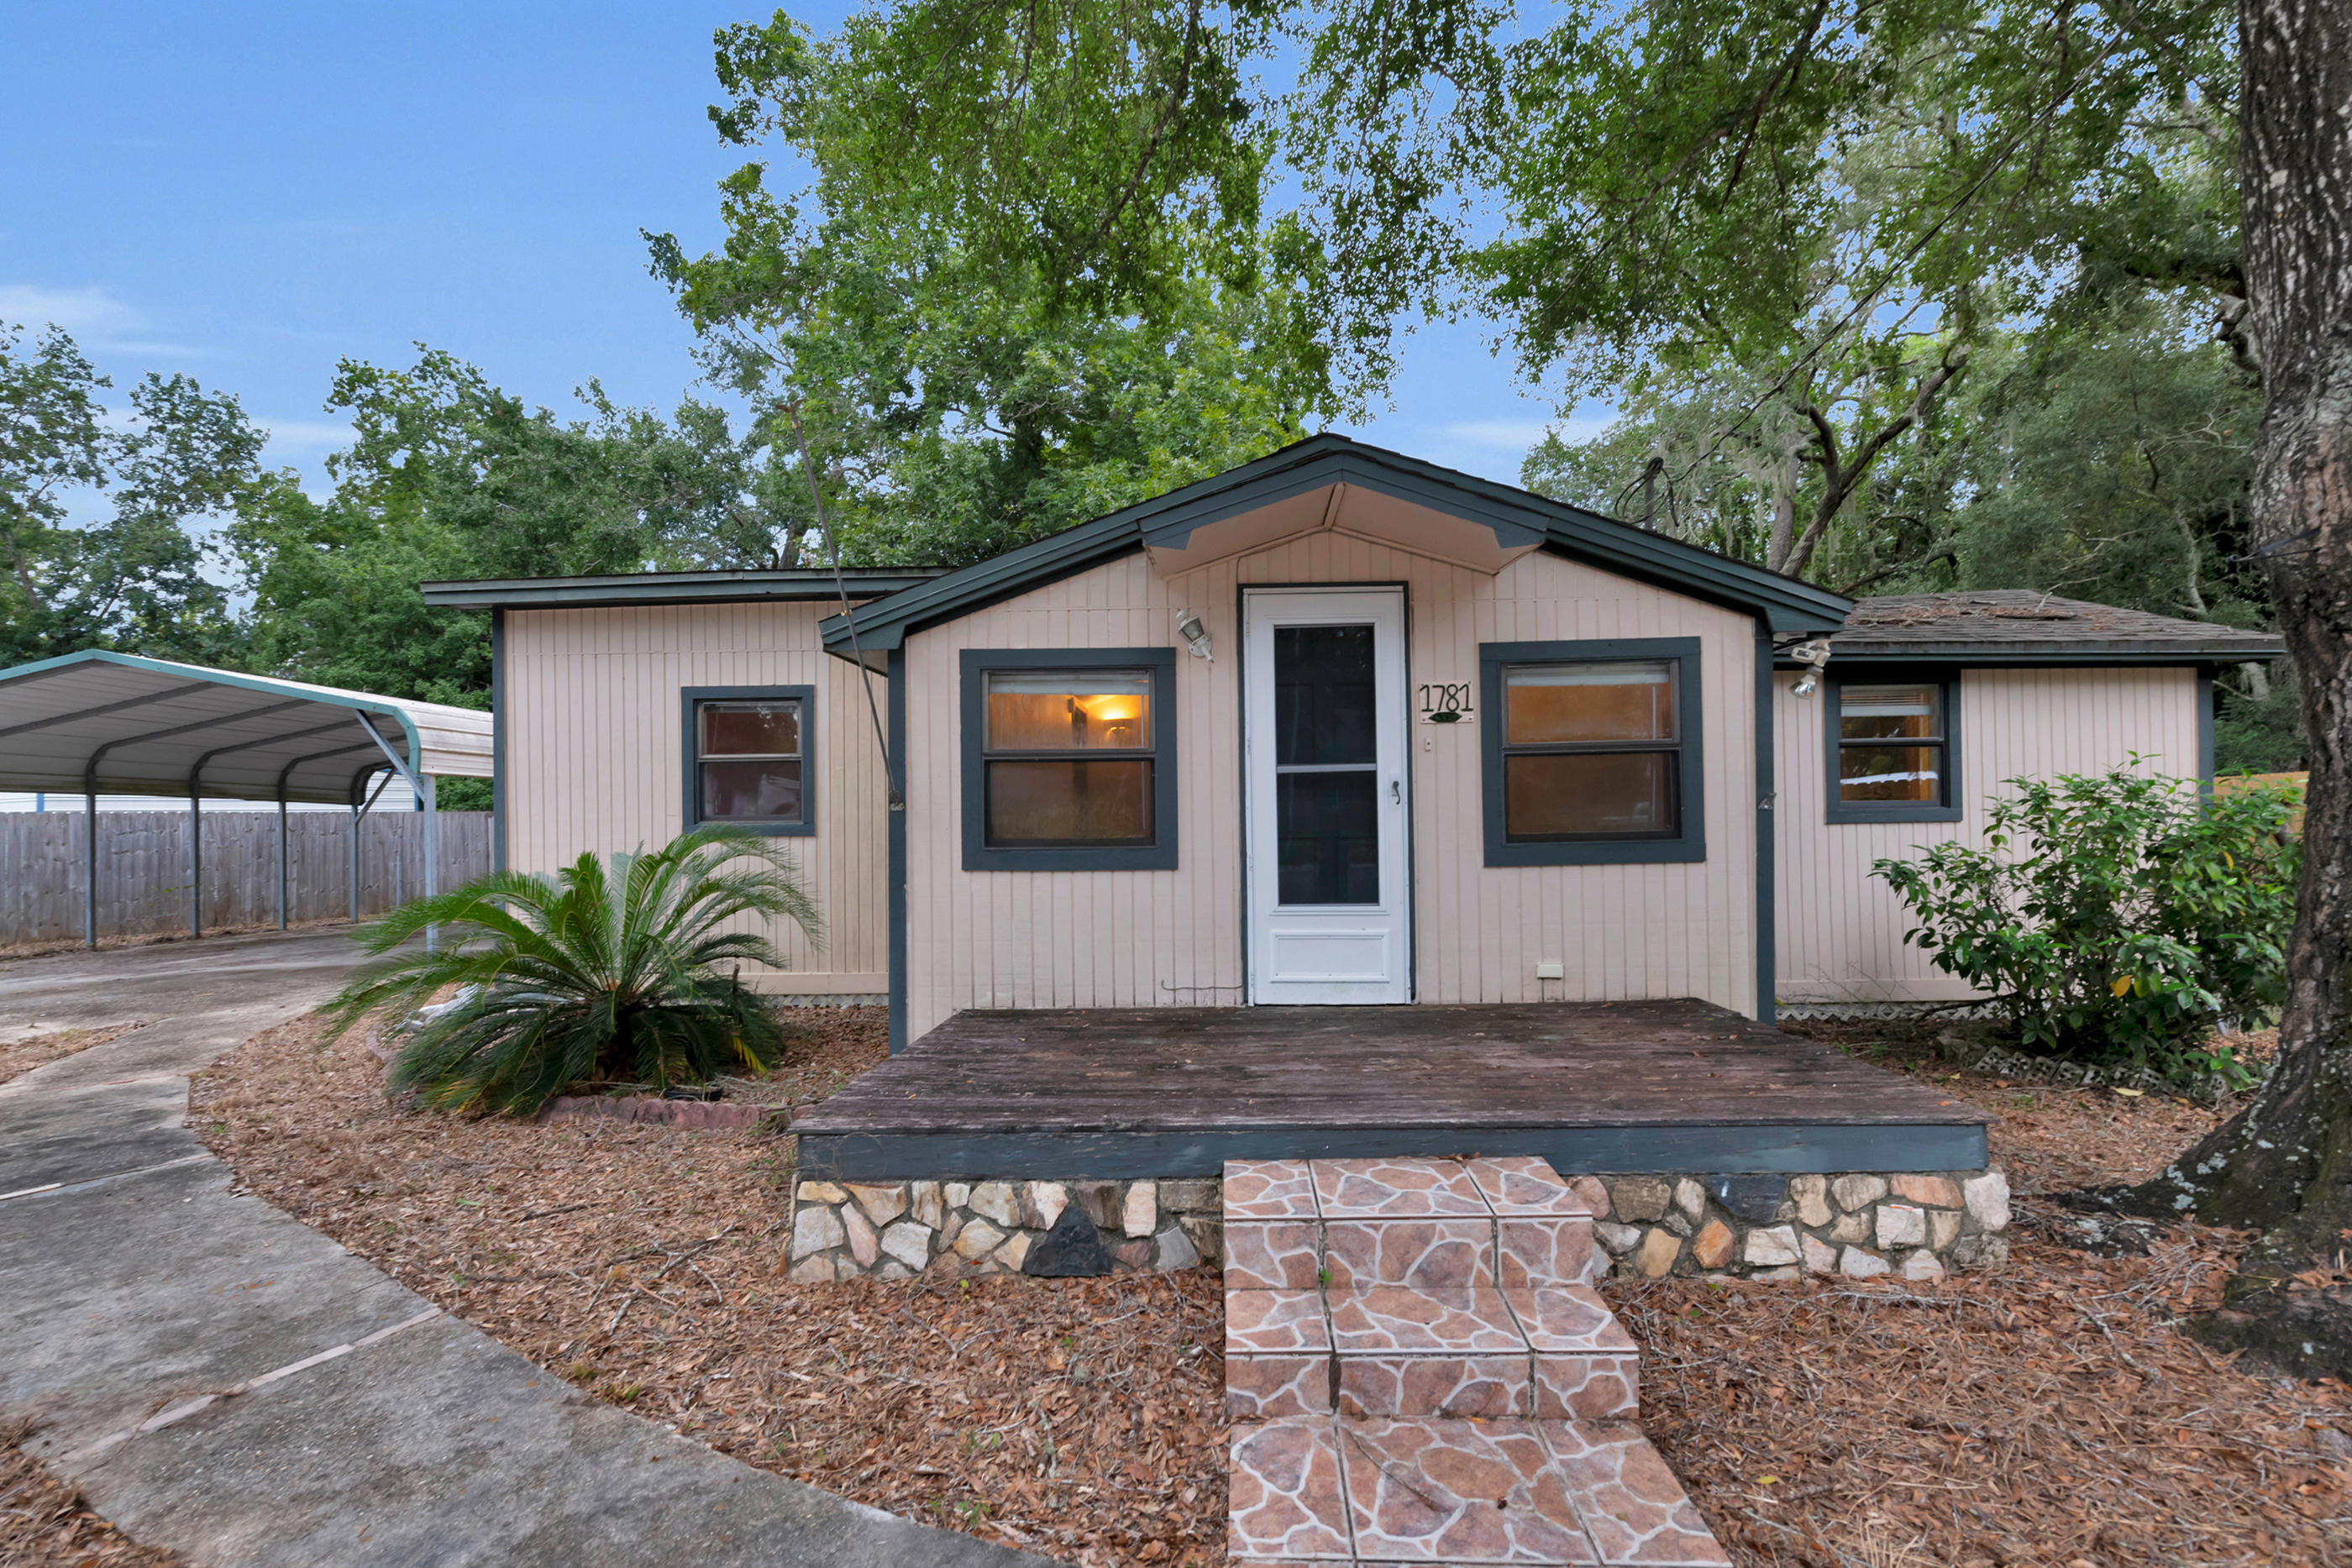 Photo of home for sale at 1781 Thomas, Niceville FL